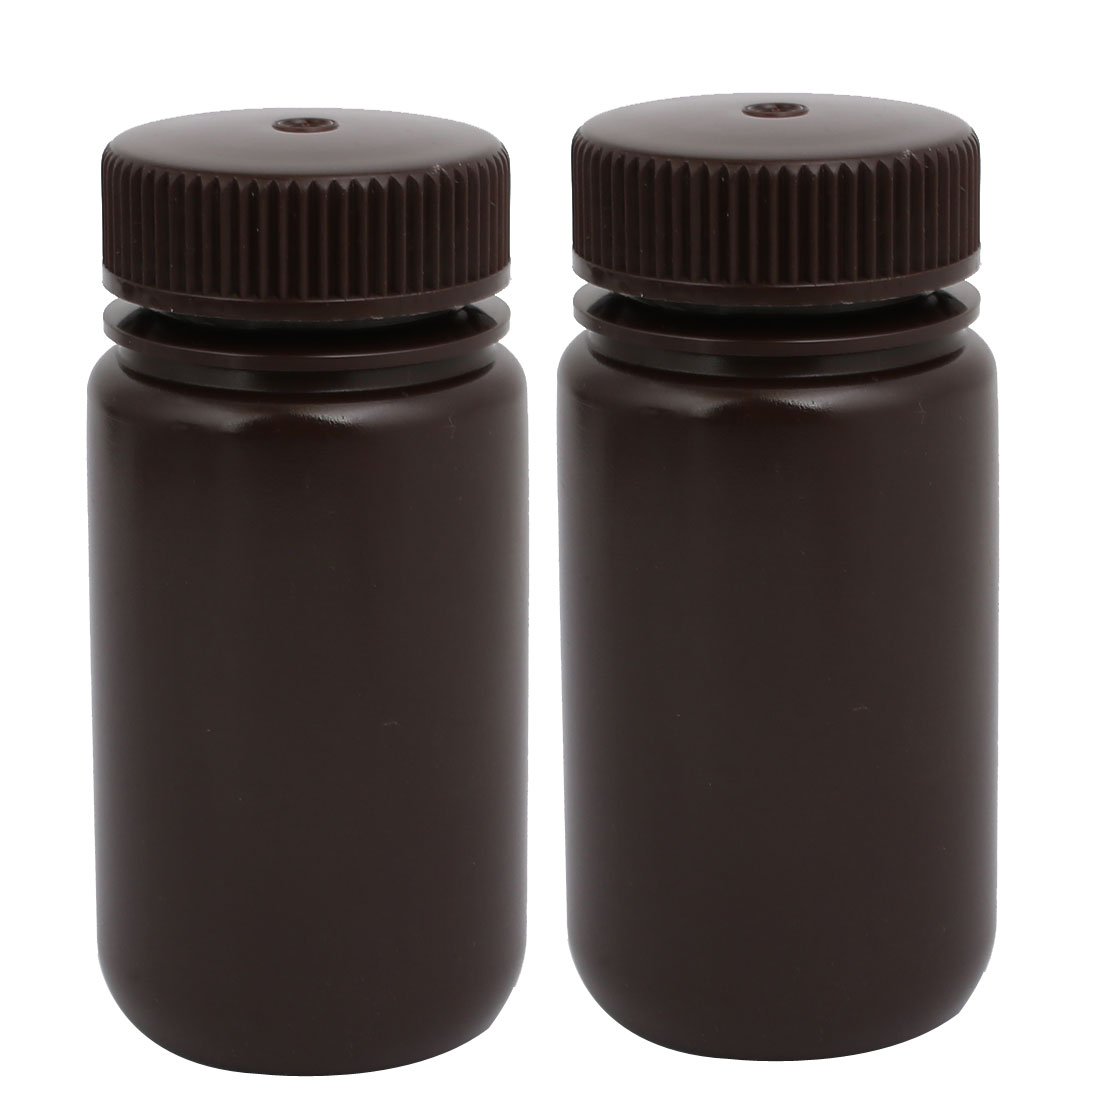 100ml HDPE Plastic Rectangle Shape Laboratory Bottle Brown 2pcs